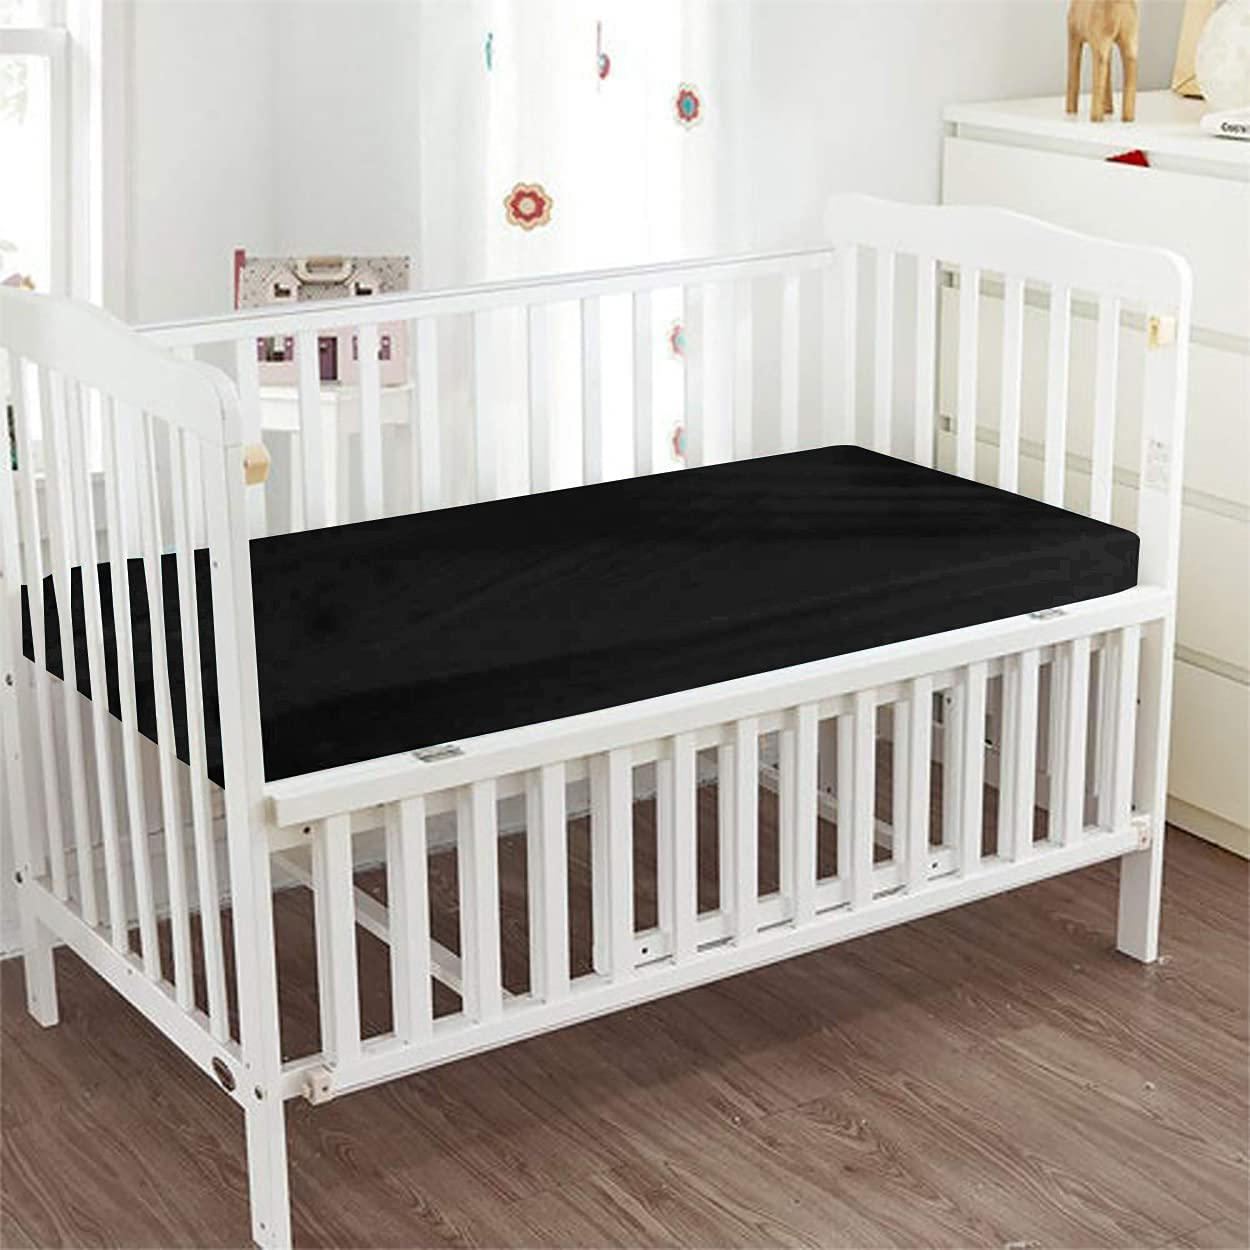 PG Beddings - quality assurance Fitted Crib Sheet Egyptian 100% Cott Color 2021 autumn and winter new Solid